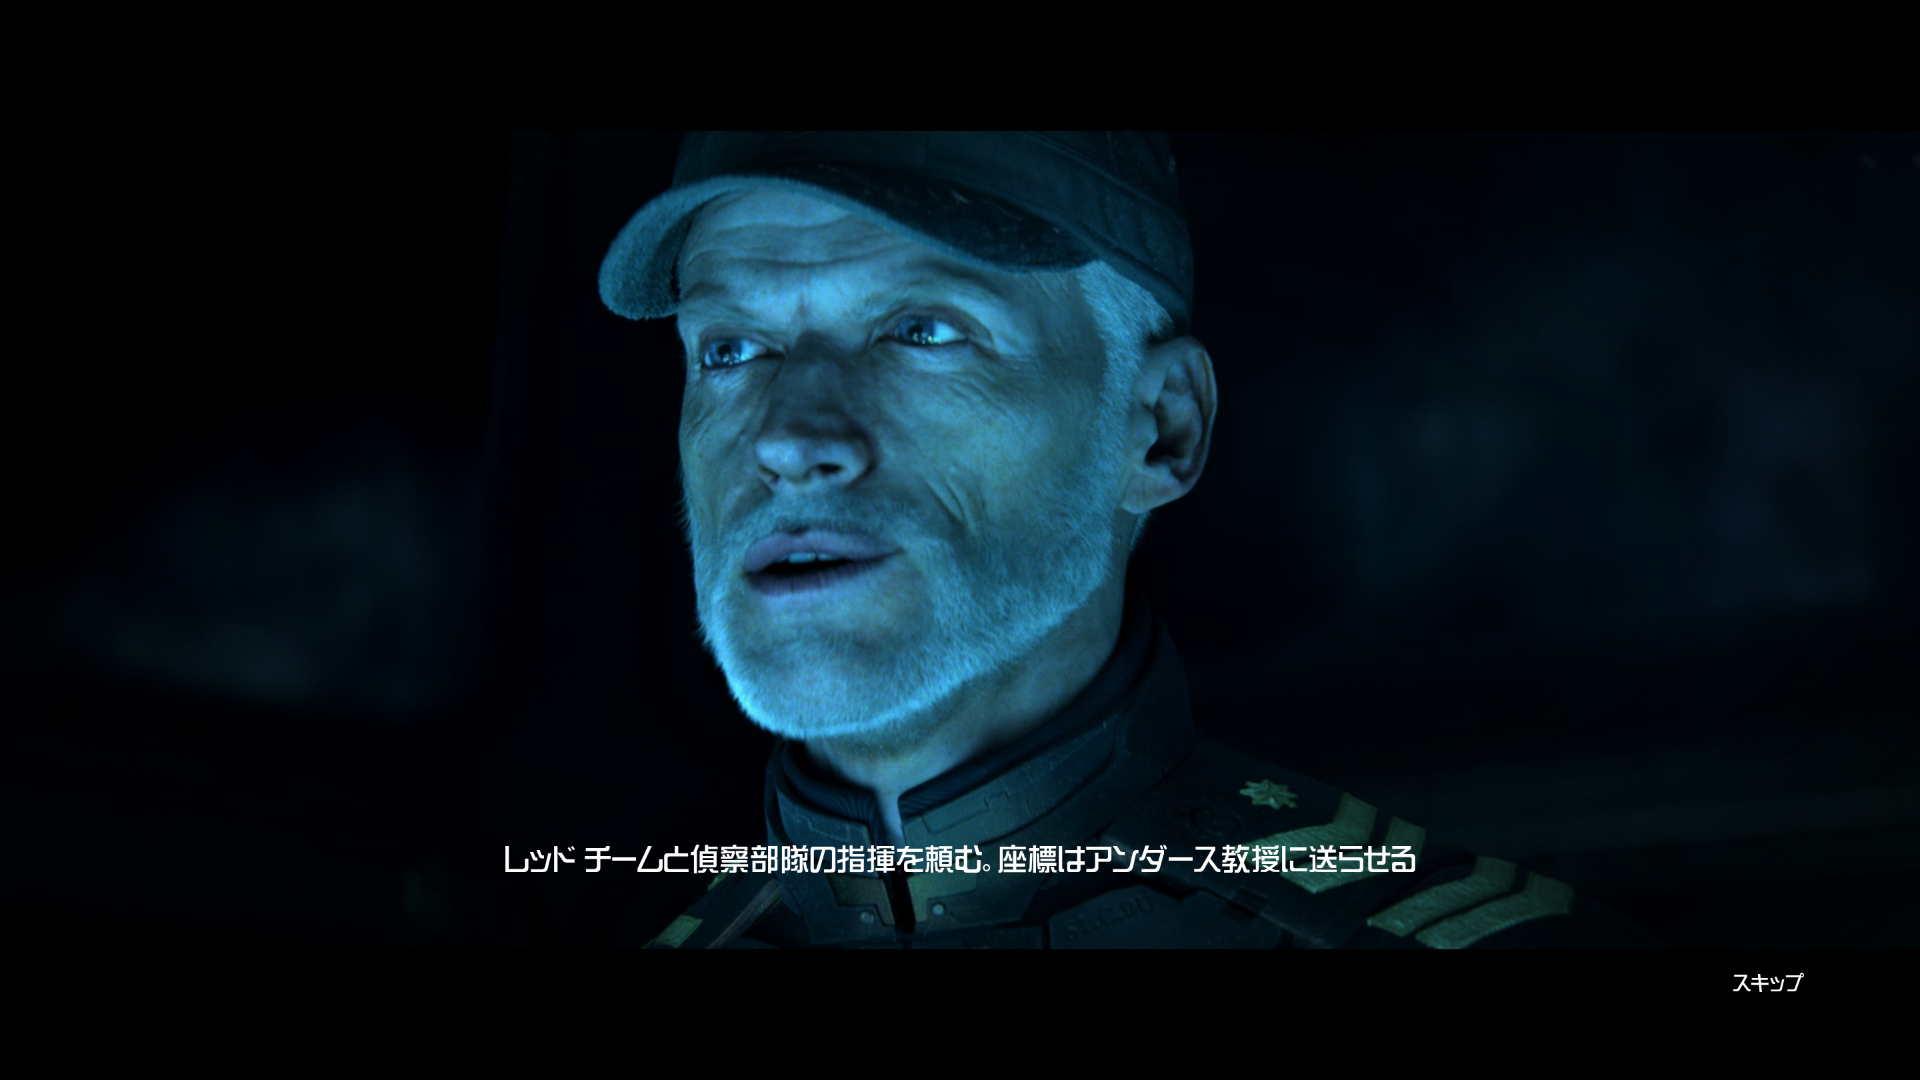 Halo Wars 2 2017_02_18 21_39_38.png